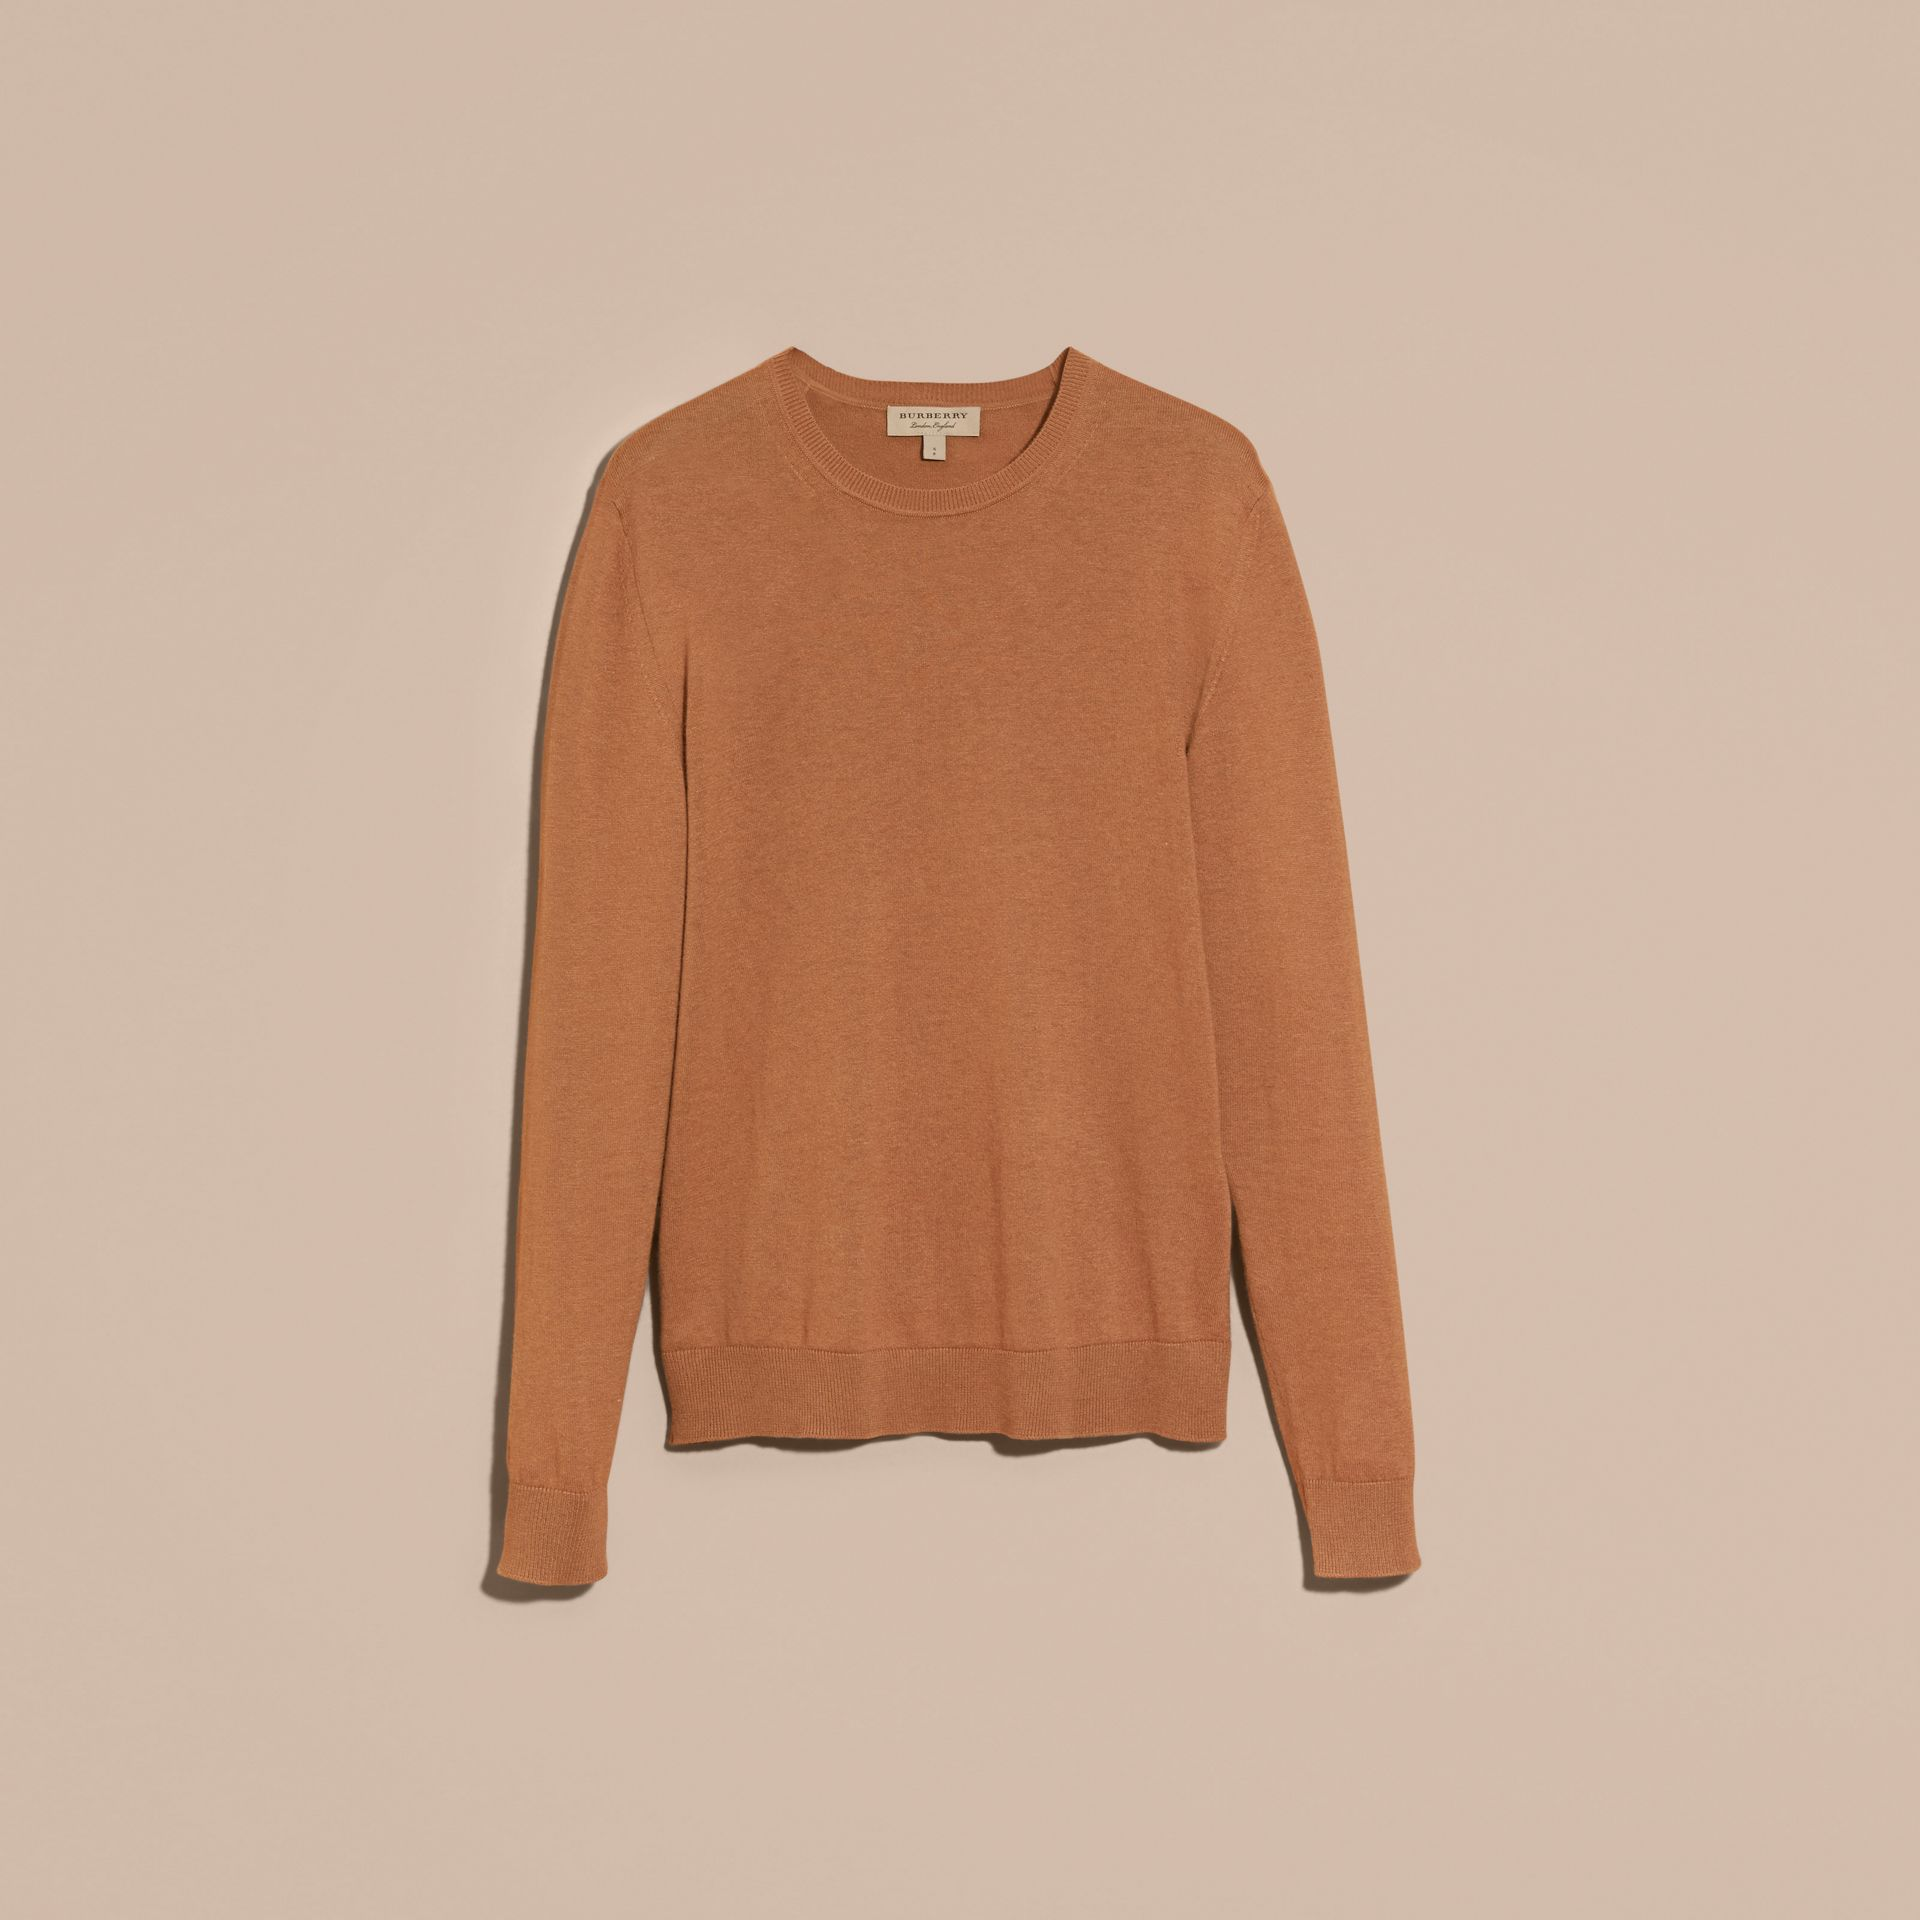 Camel Check Trim Cashmere Cotton Sweater Camel - gallery image 4